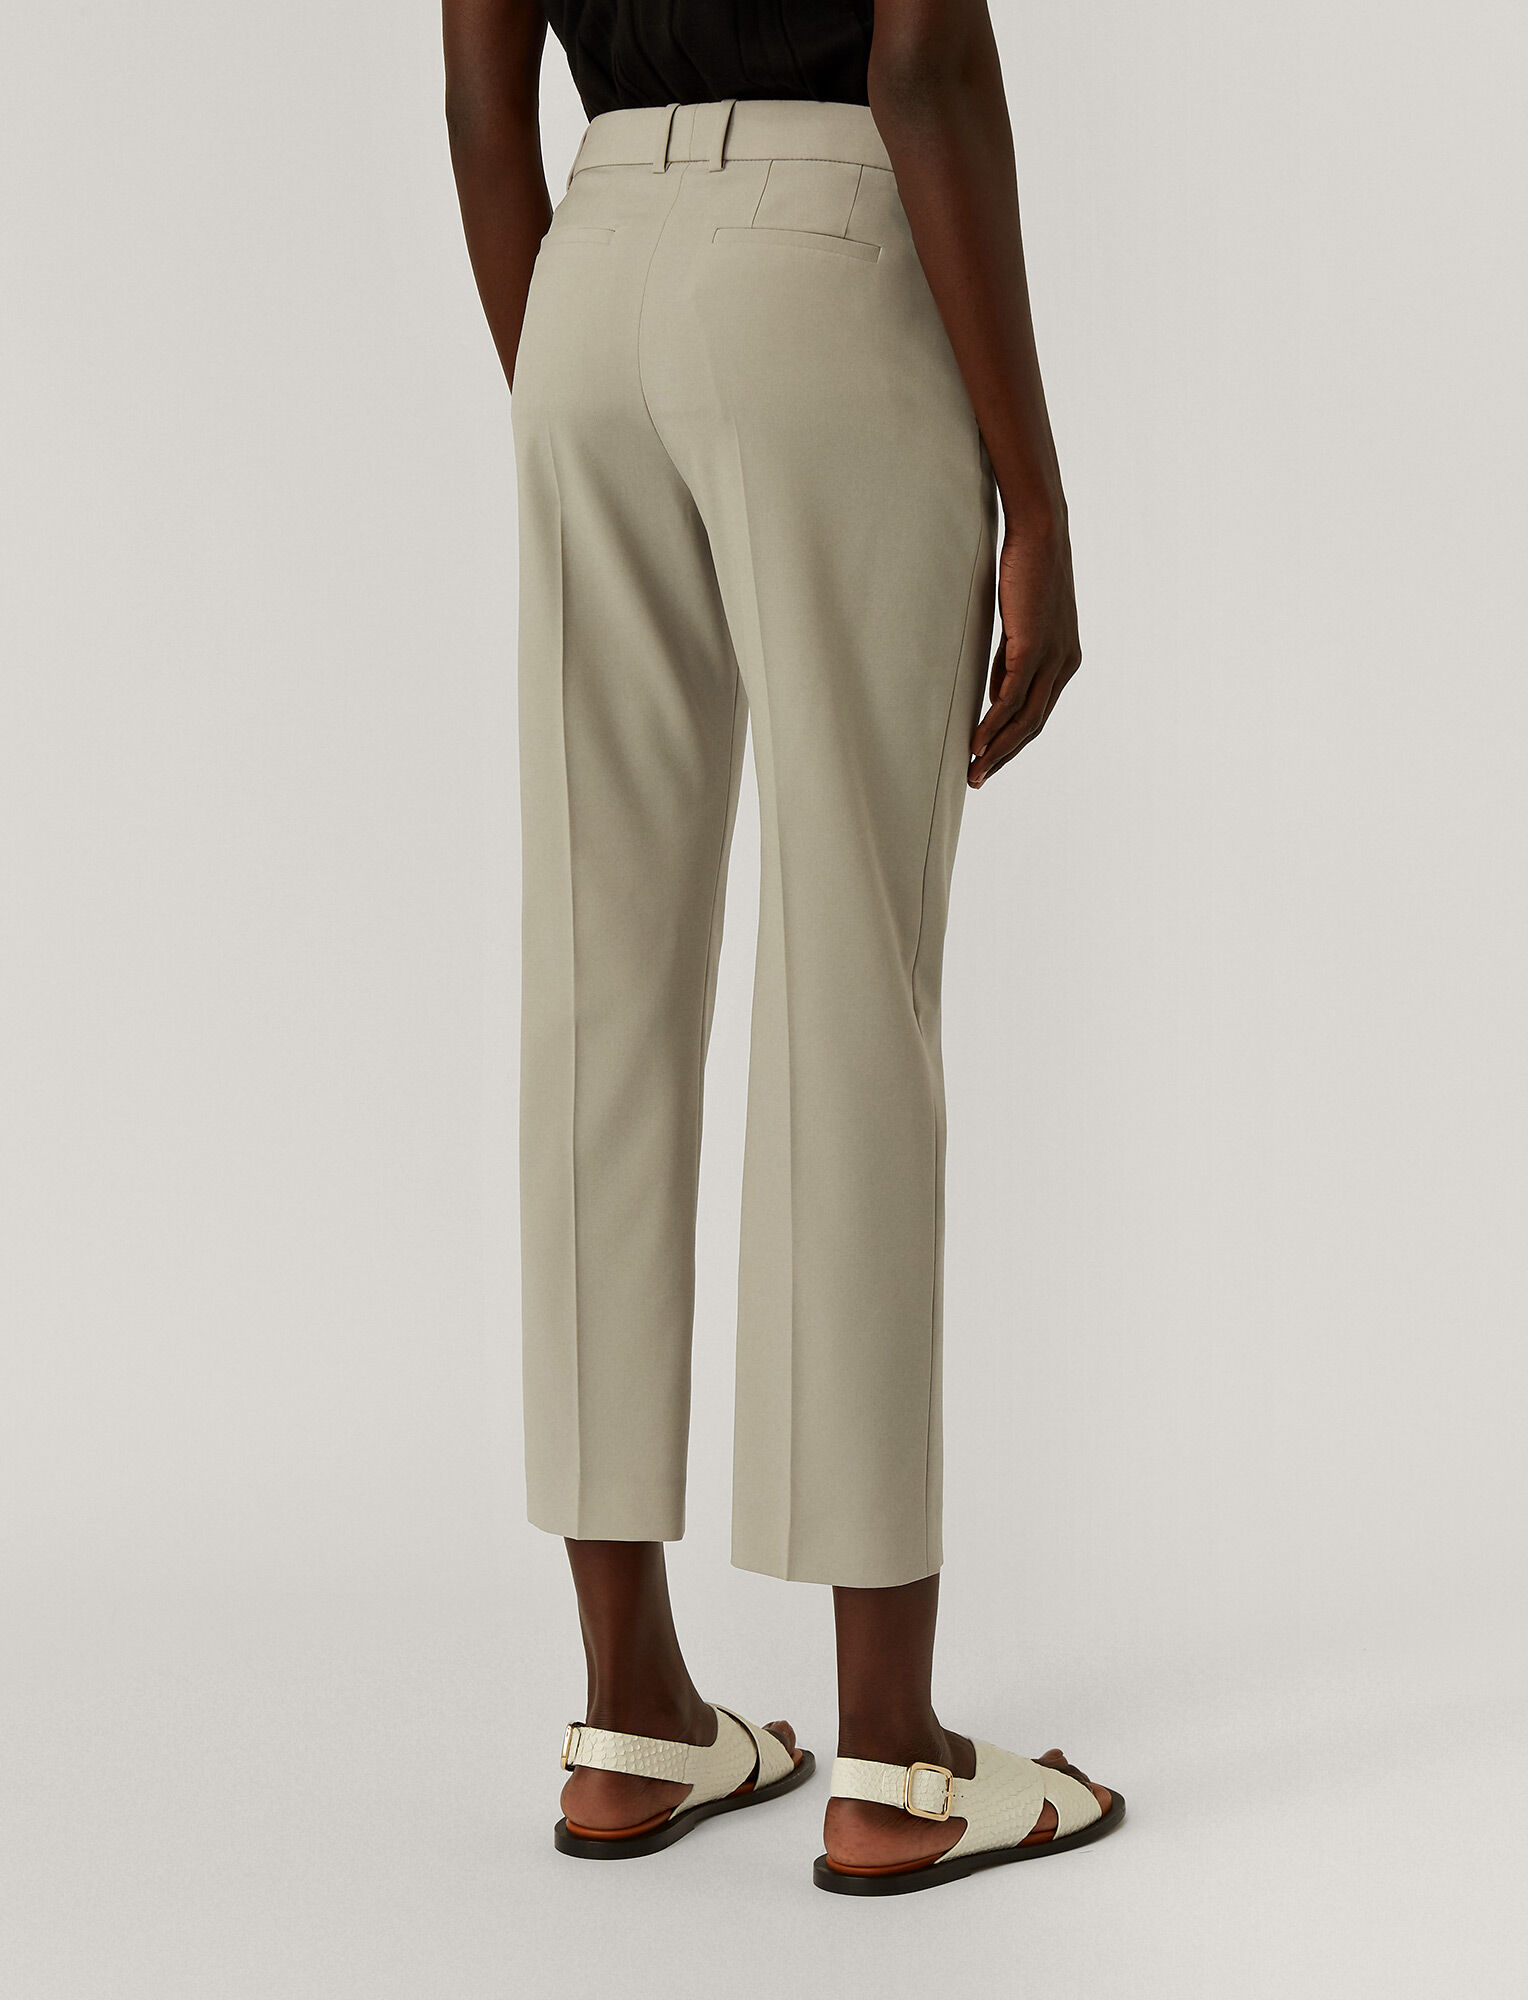 Joseph, Light Wool Suiting Tape Trousers, in CLOUD